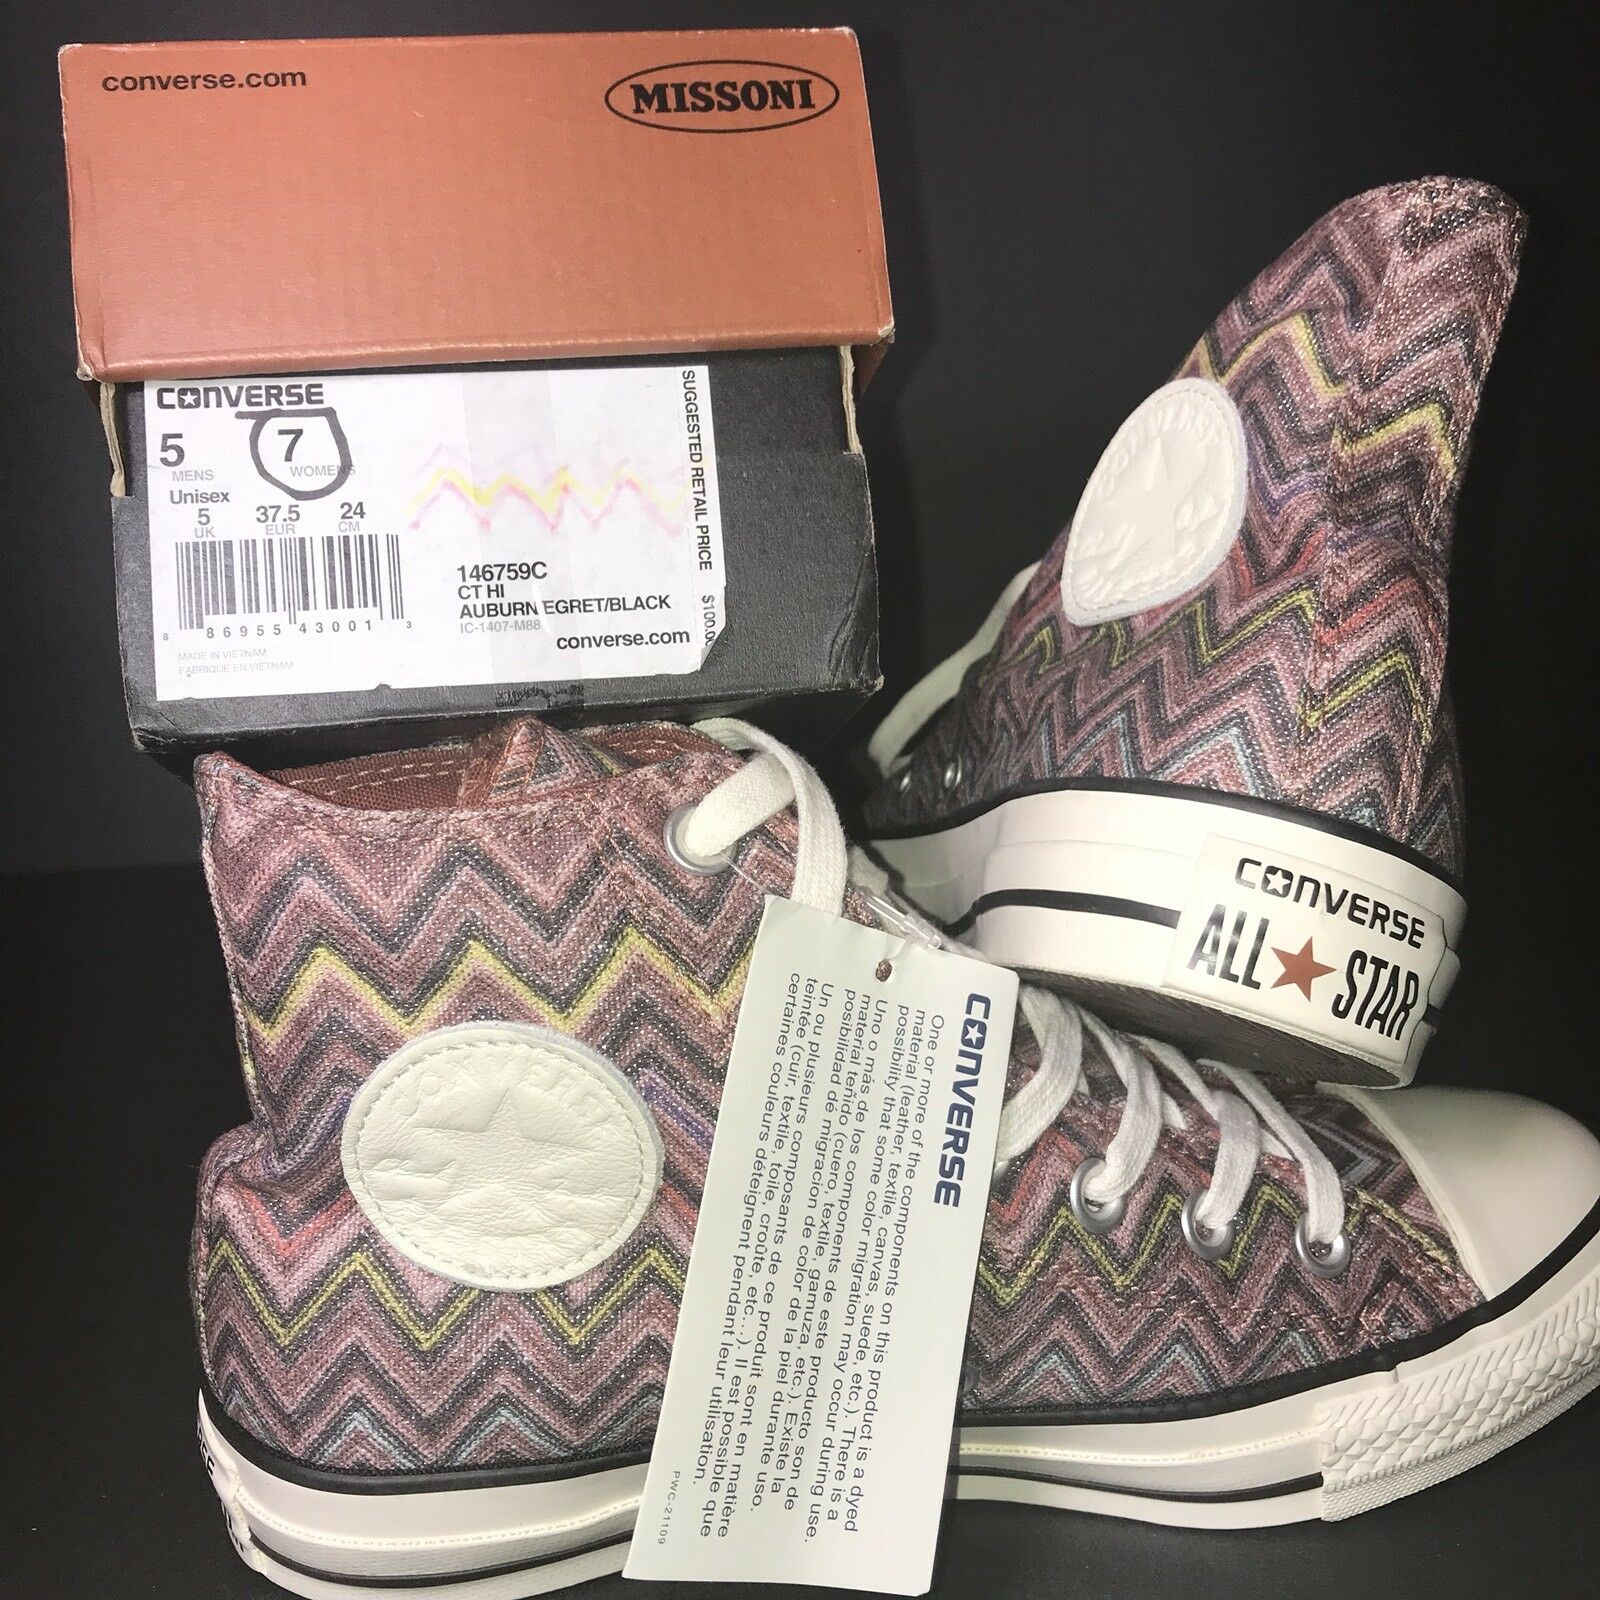 � Womens Size 146759c 7 Converse x Missoni 146759c Size Multi-Color High Top All Star Pink 904b33